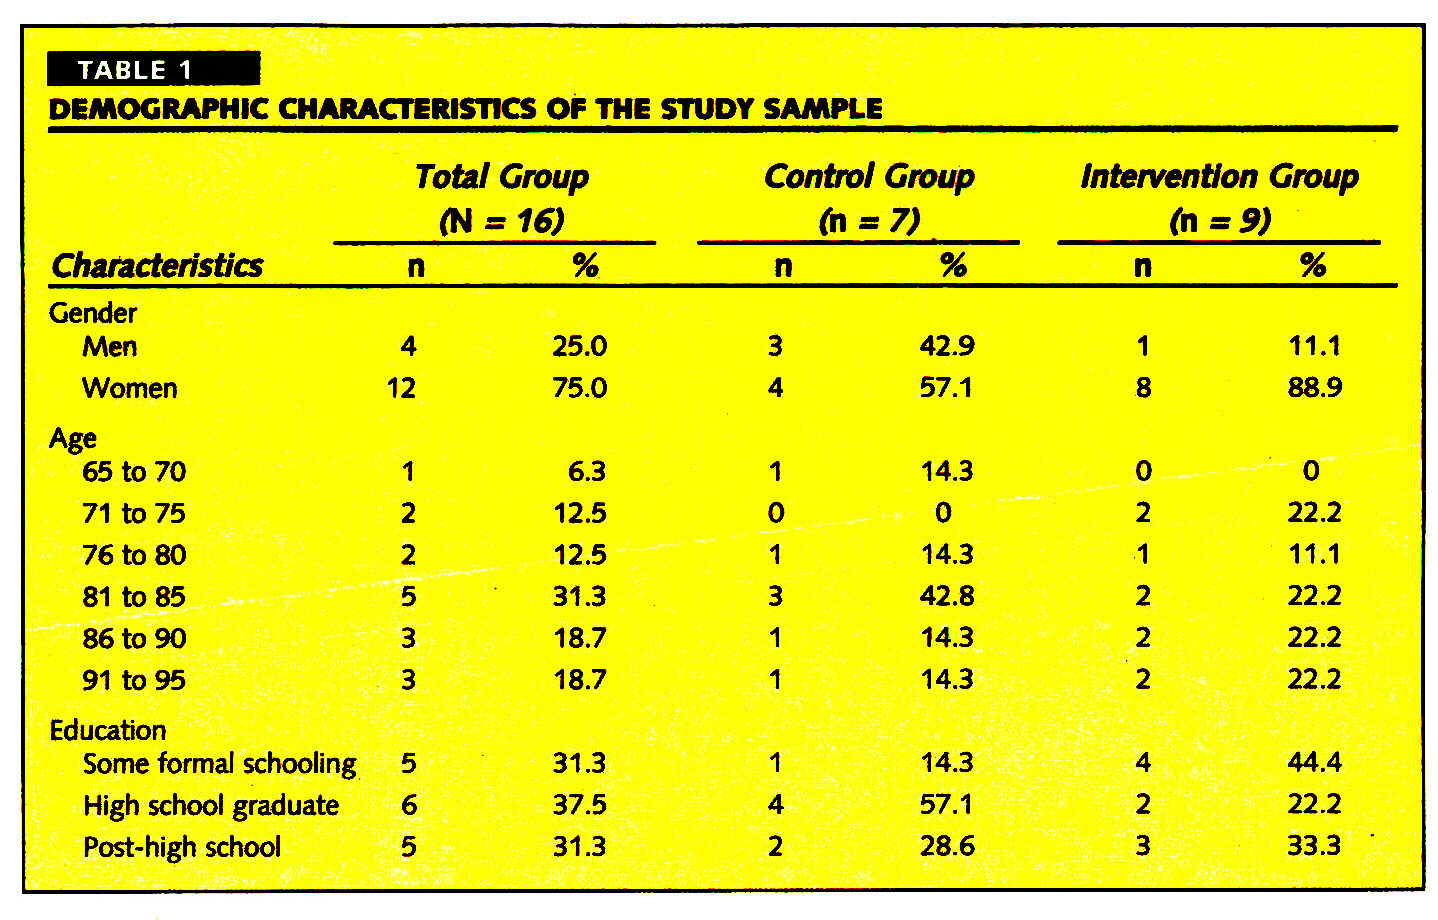 TABLE 1DEMOGRAPHIC CHARACTERISTICS OF THE STUDY SAMPLE